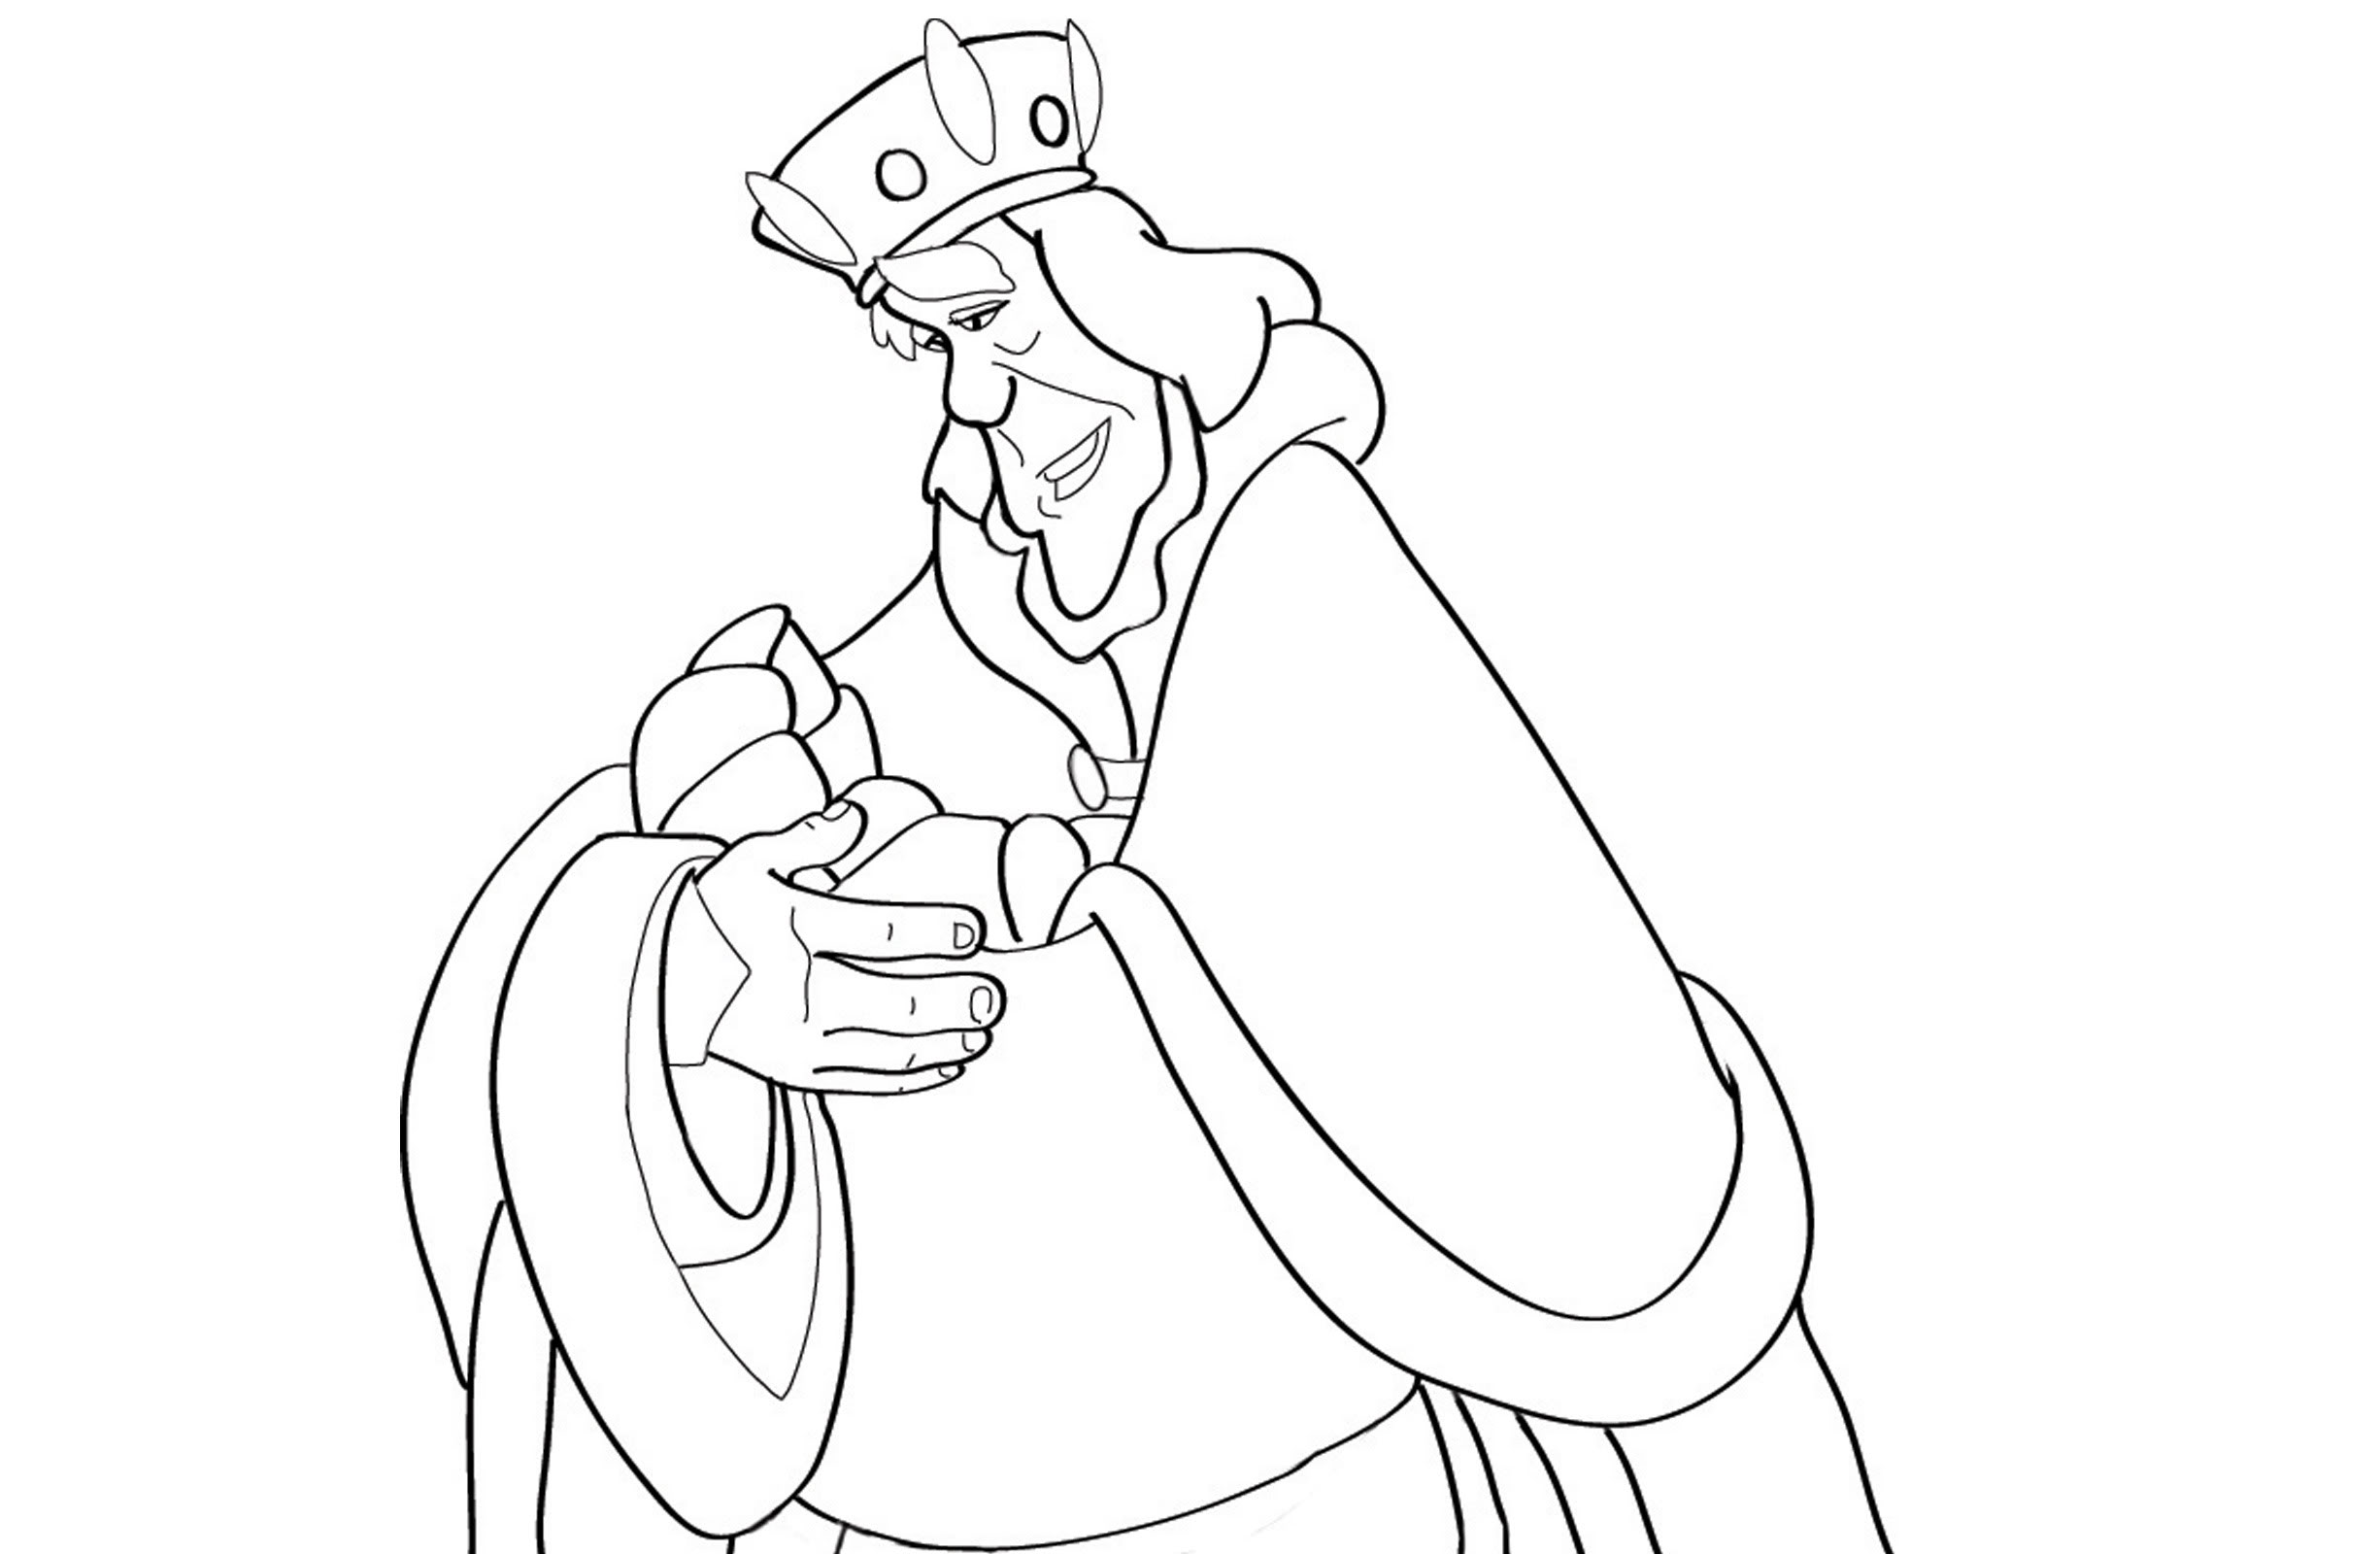 disney swan princess coloring pages - photo#11